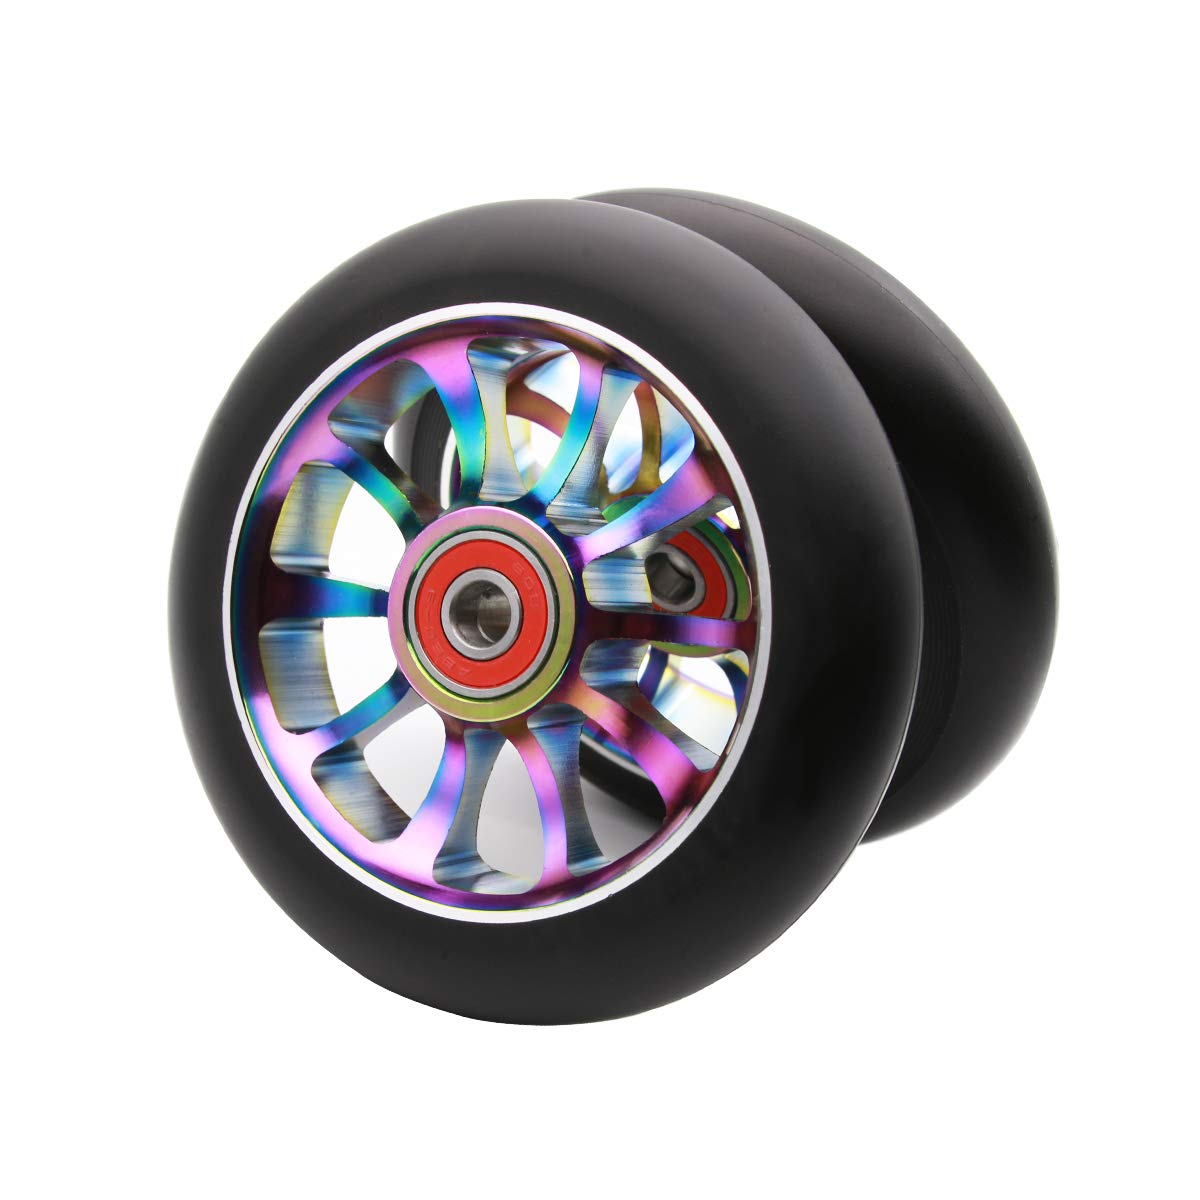 Z-FIRST 2Pcs 110mm Pro Scooter Wheels with ABEC 9 Bearings Fit for MGP//Razor//Lucky Envy//Vokul Pro Scooters Replacement Wheels